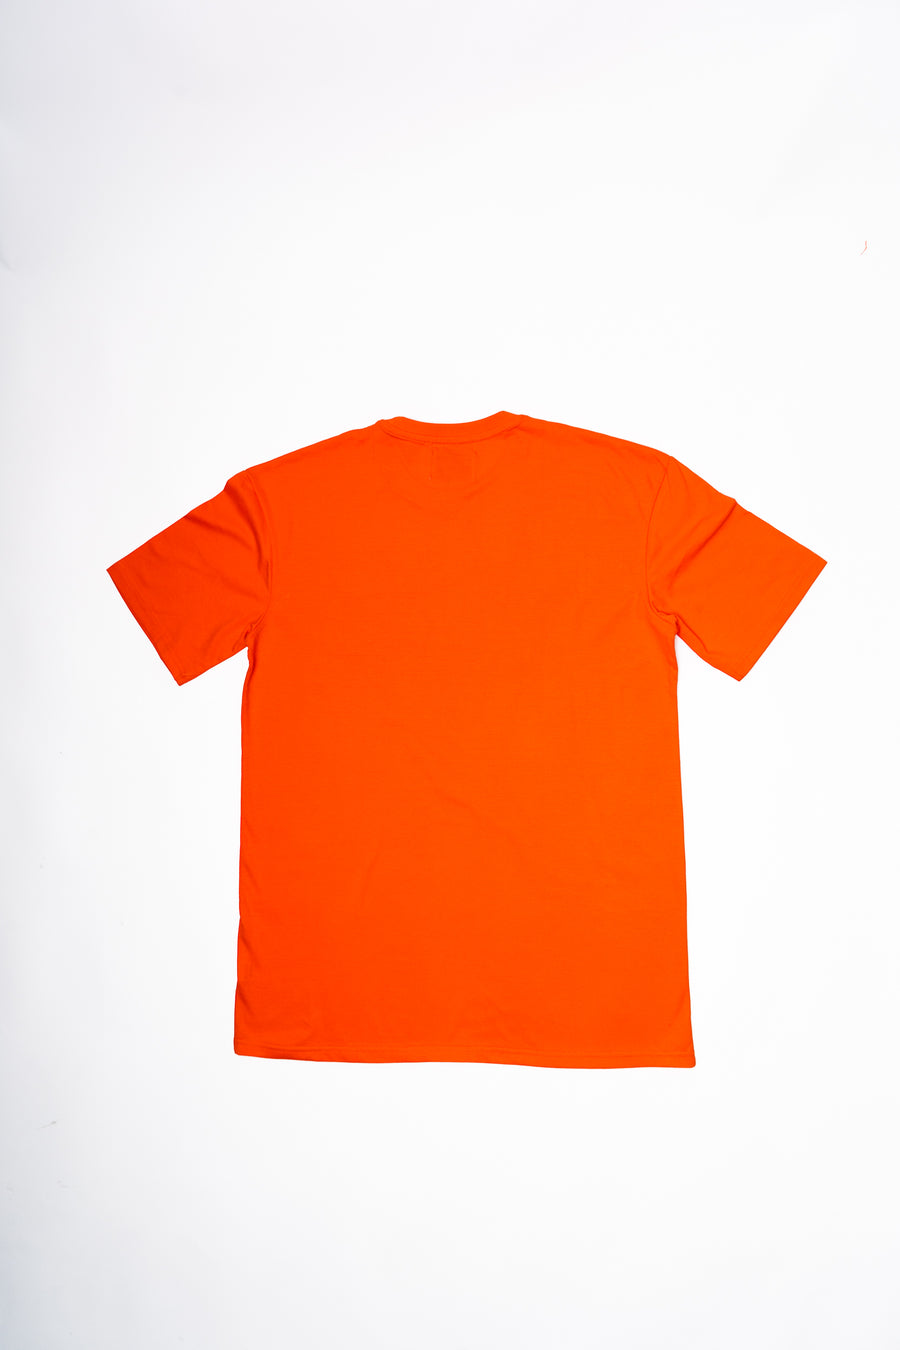 SPLATTER T-SHIRT ORANGE